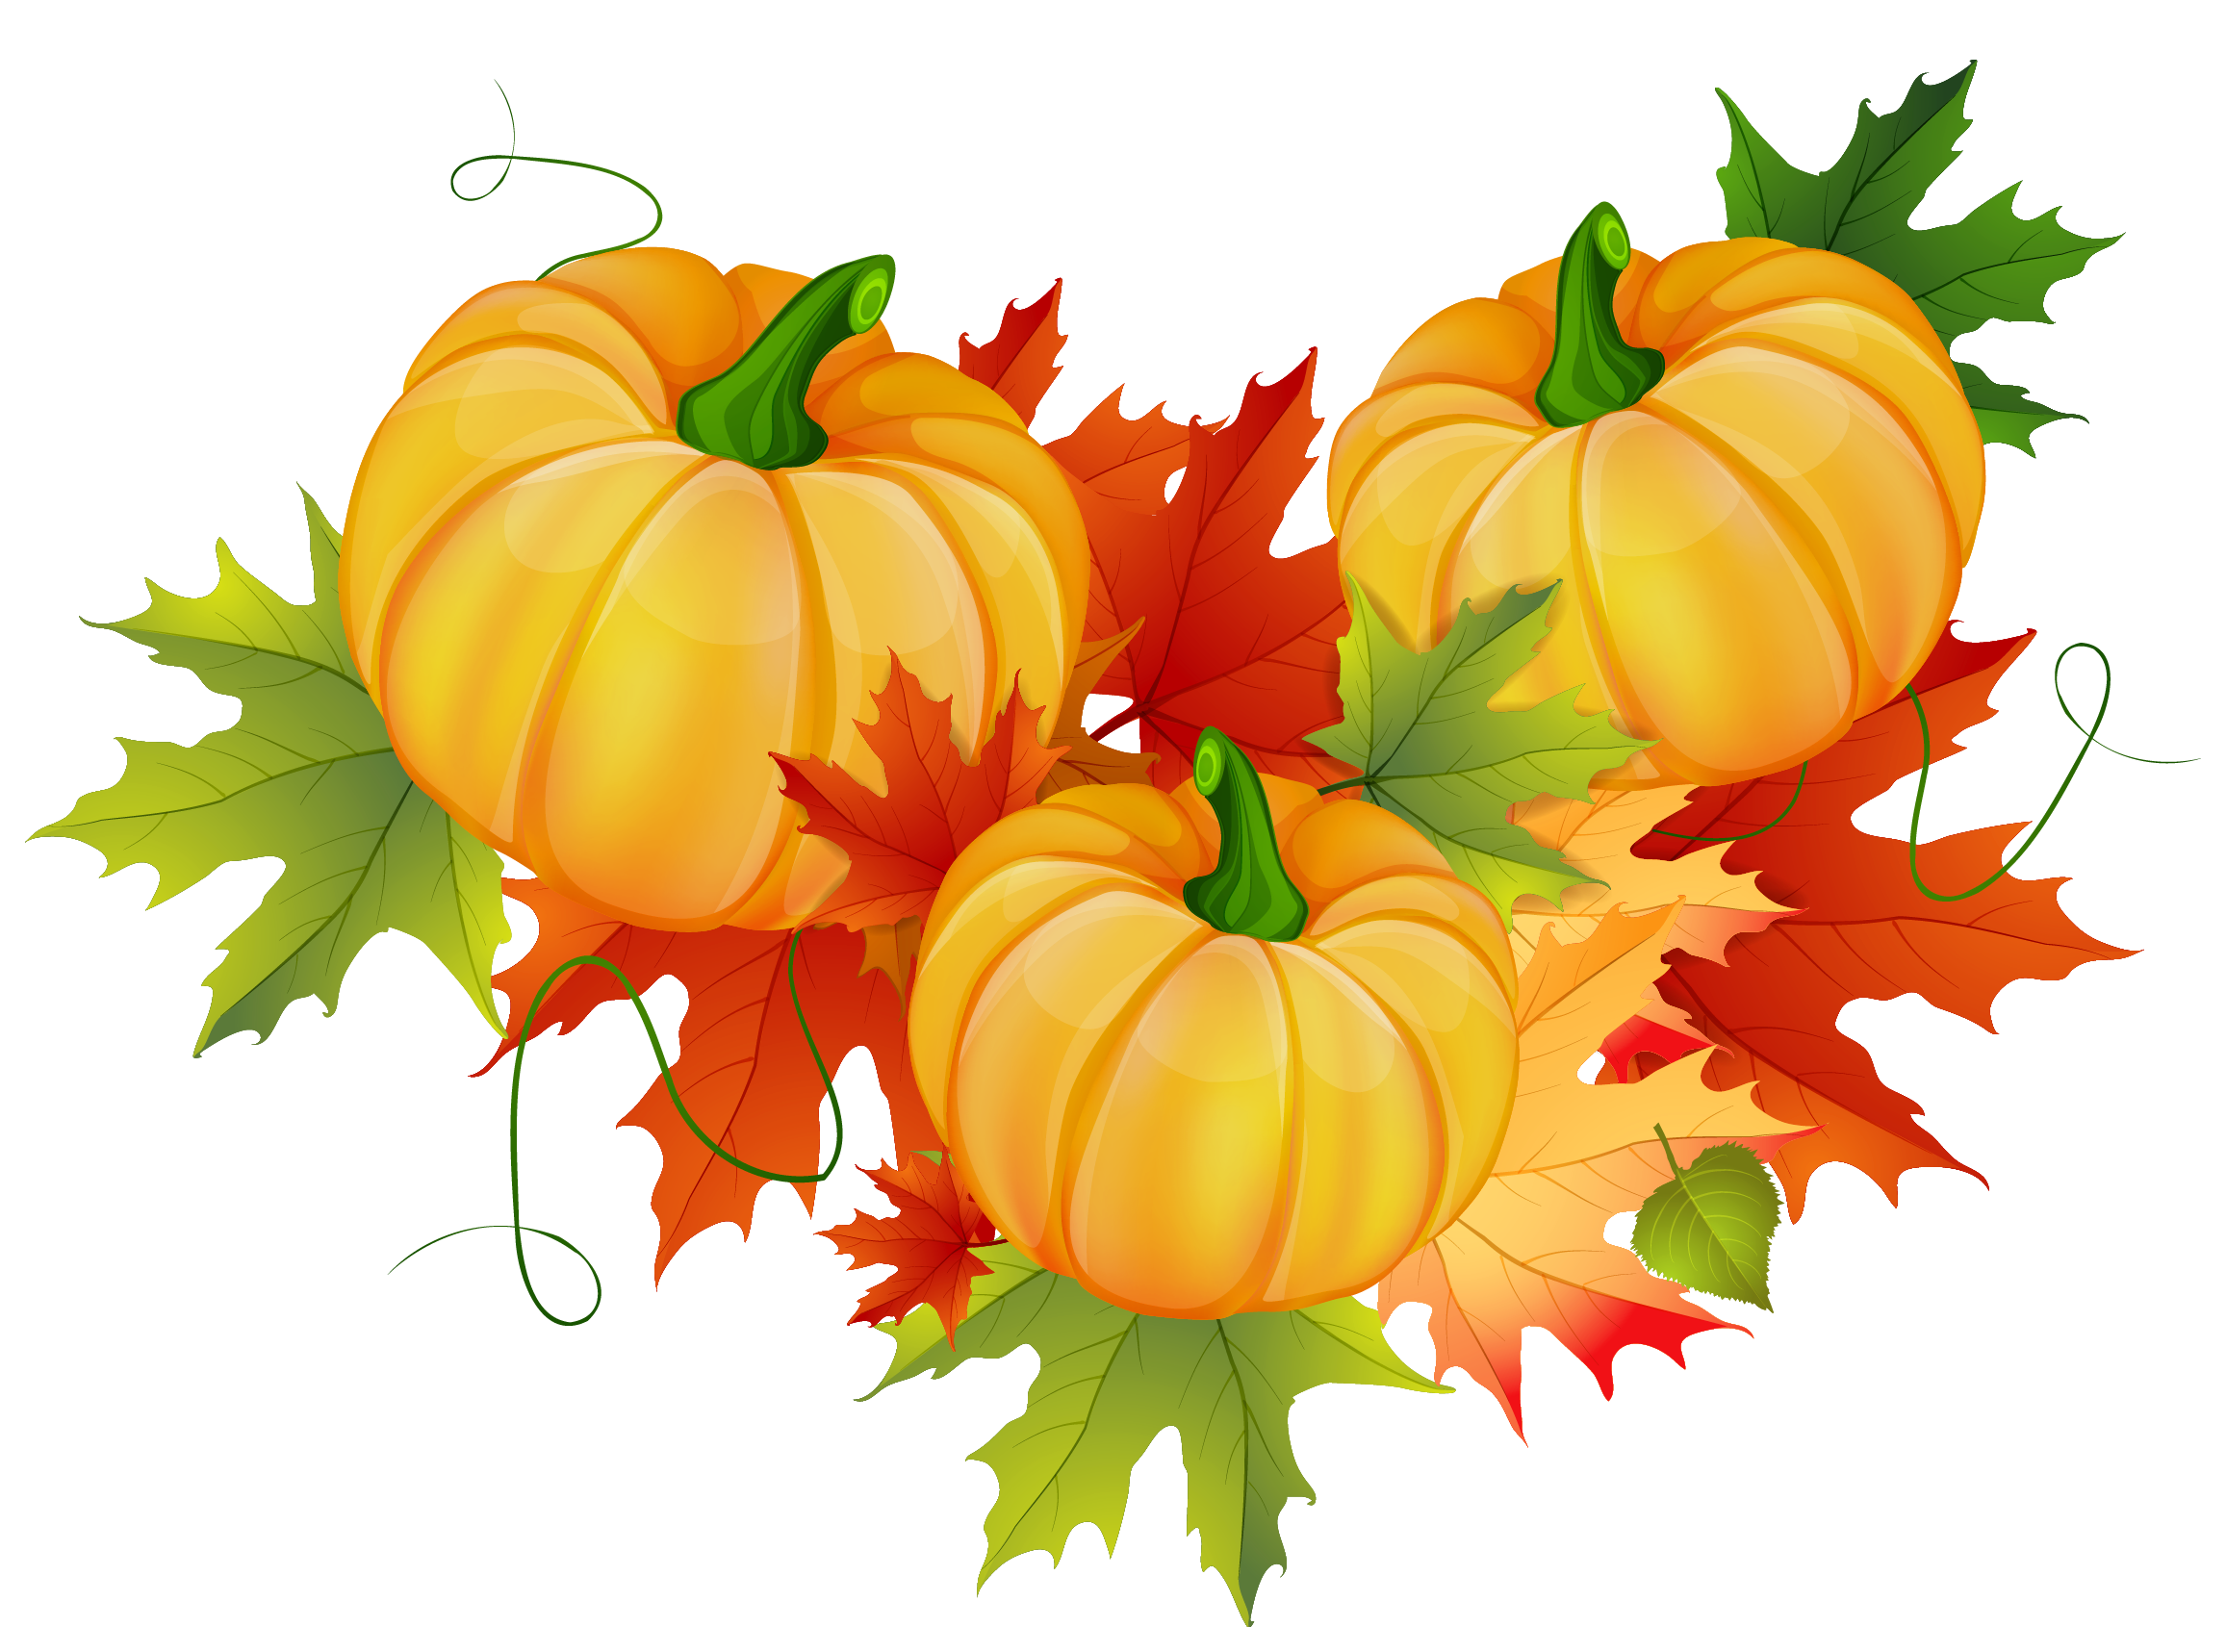 Thanksgiving png images. Pumpkin clipart